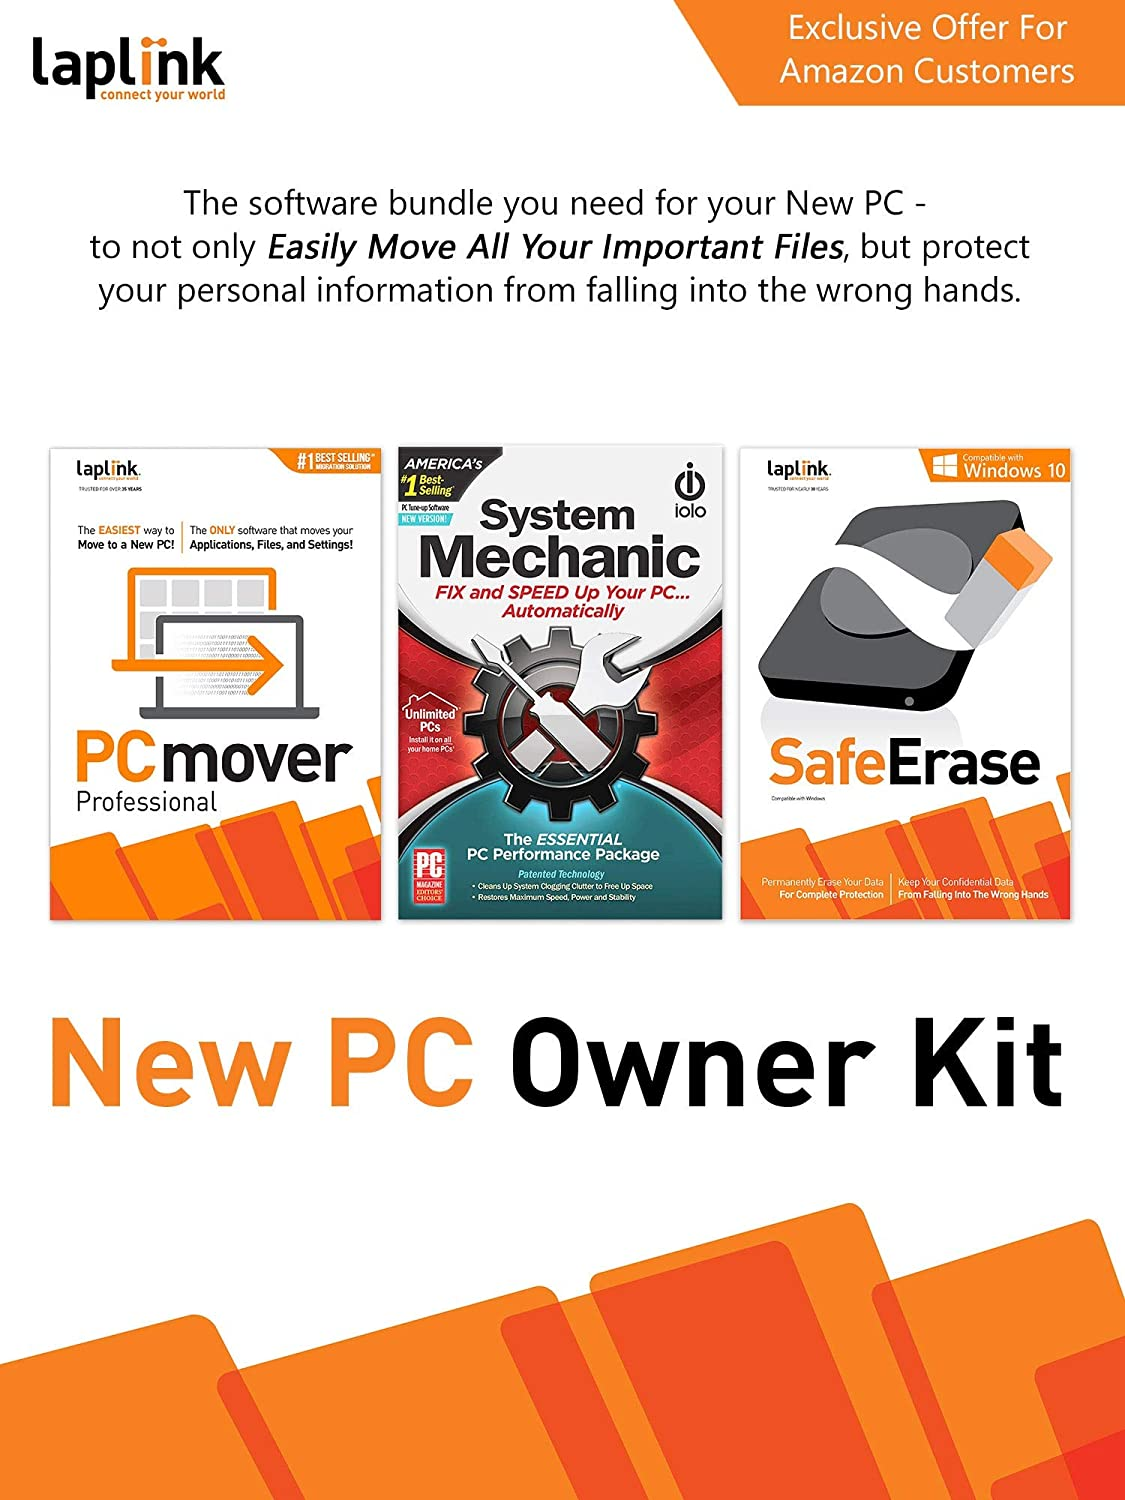 Amazon Com New Pc Owner Kit Laplink Pcmover Professional Laplink Safeerase Iolo System Mechanic Pc Download Software